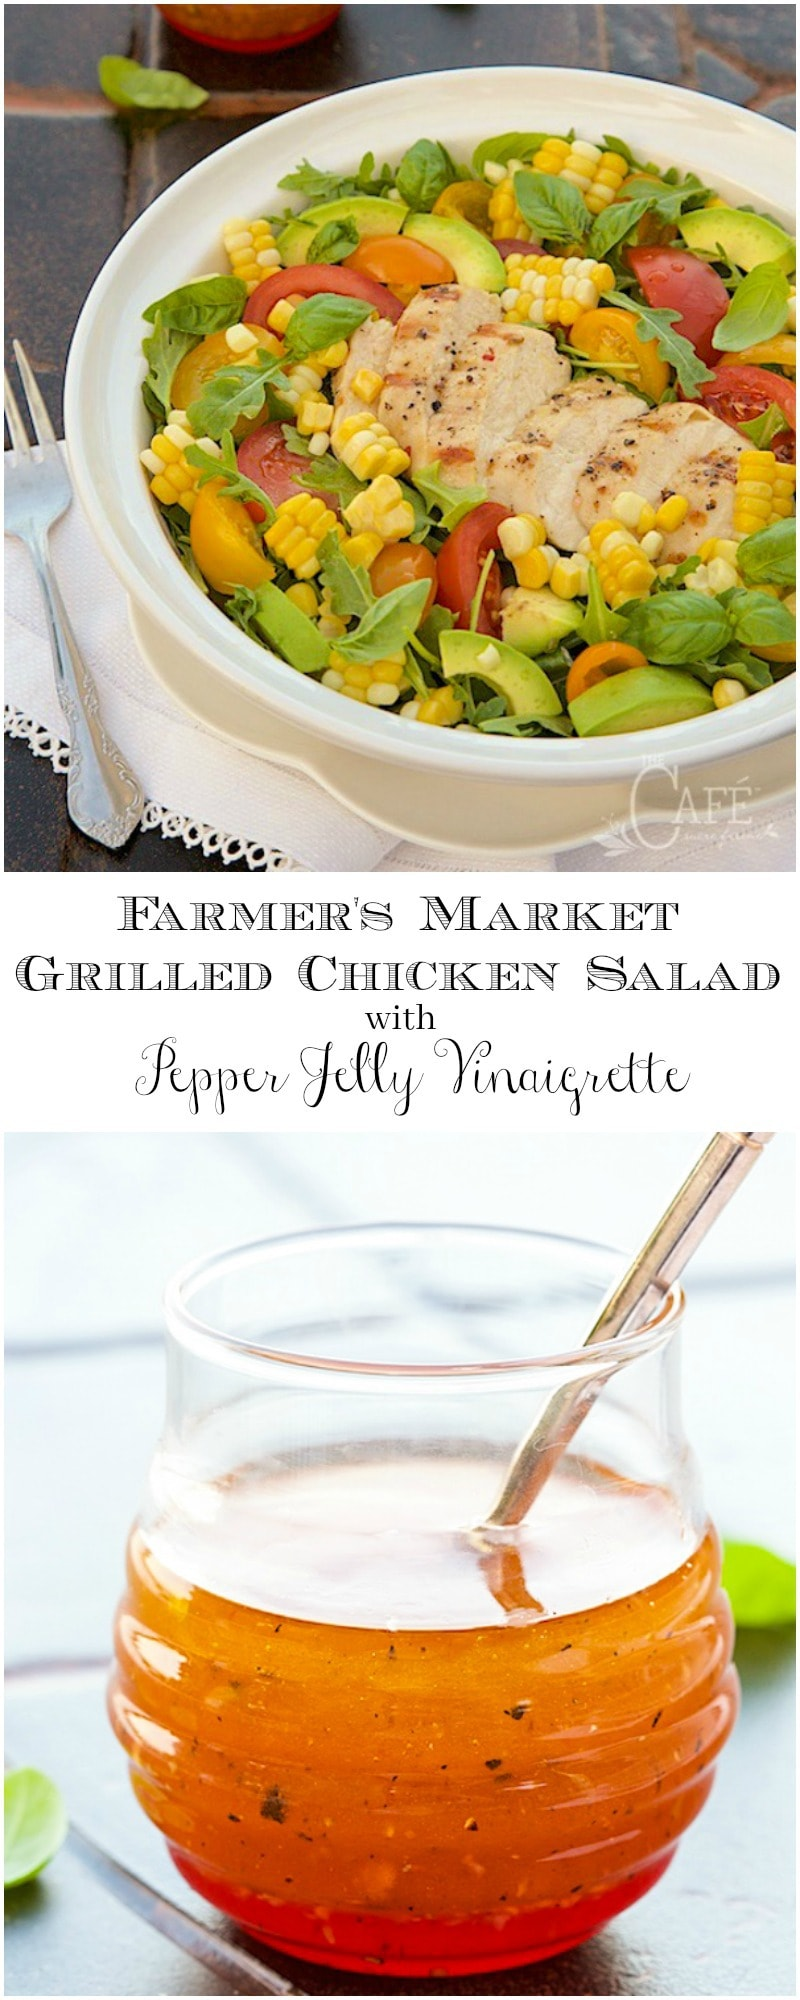 A fabulous fresh summer salad with a sweet and spicy dressing with tender, juicy, grilled chicken on top.